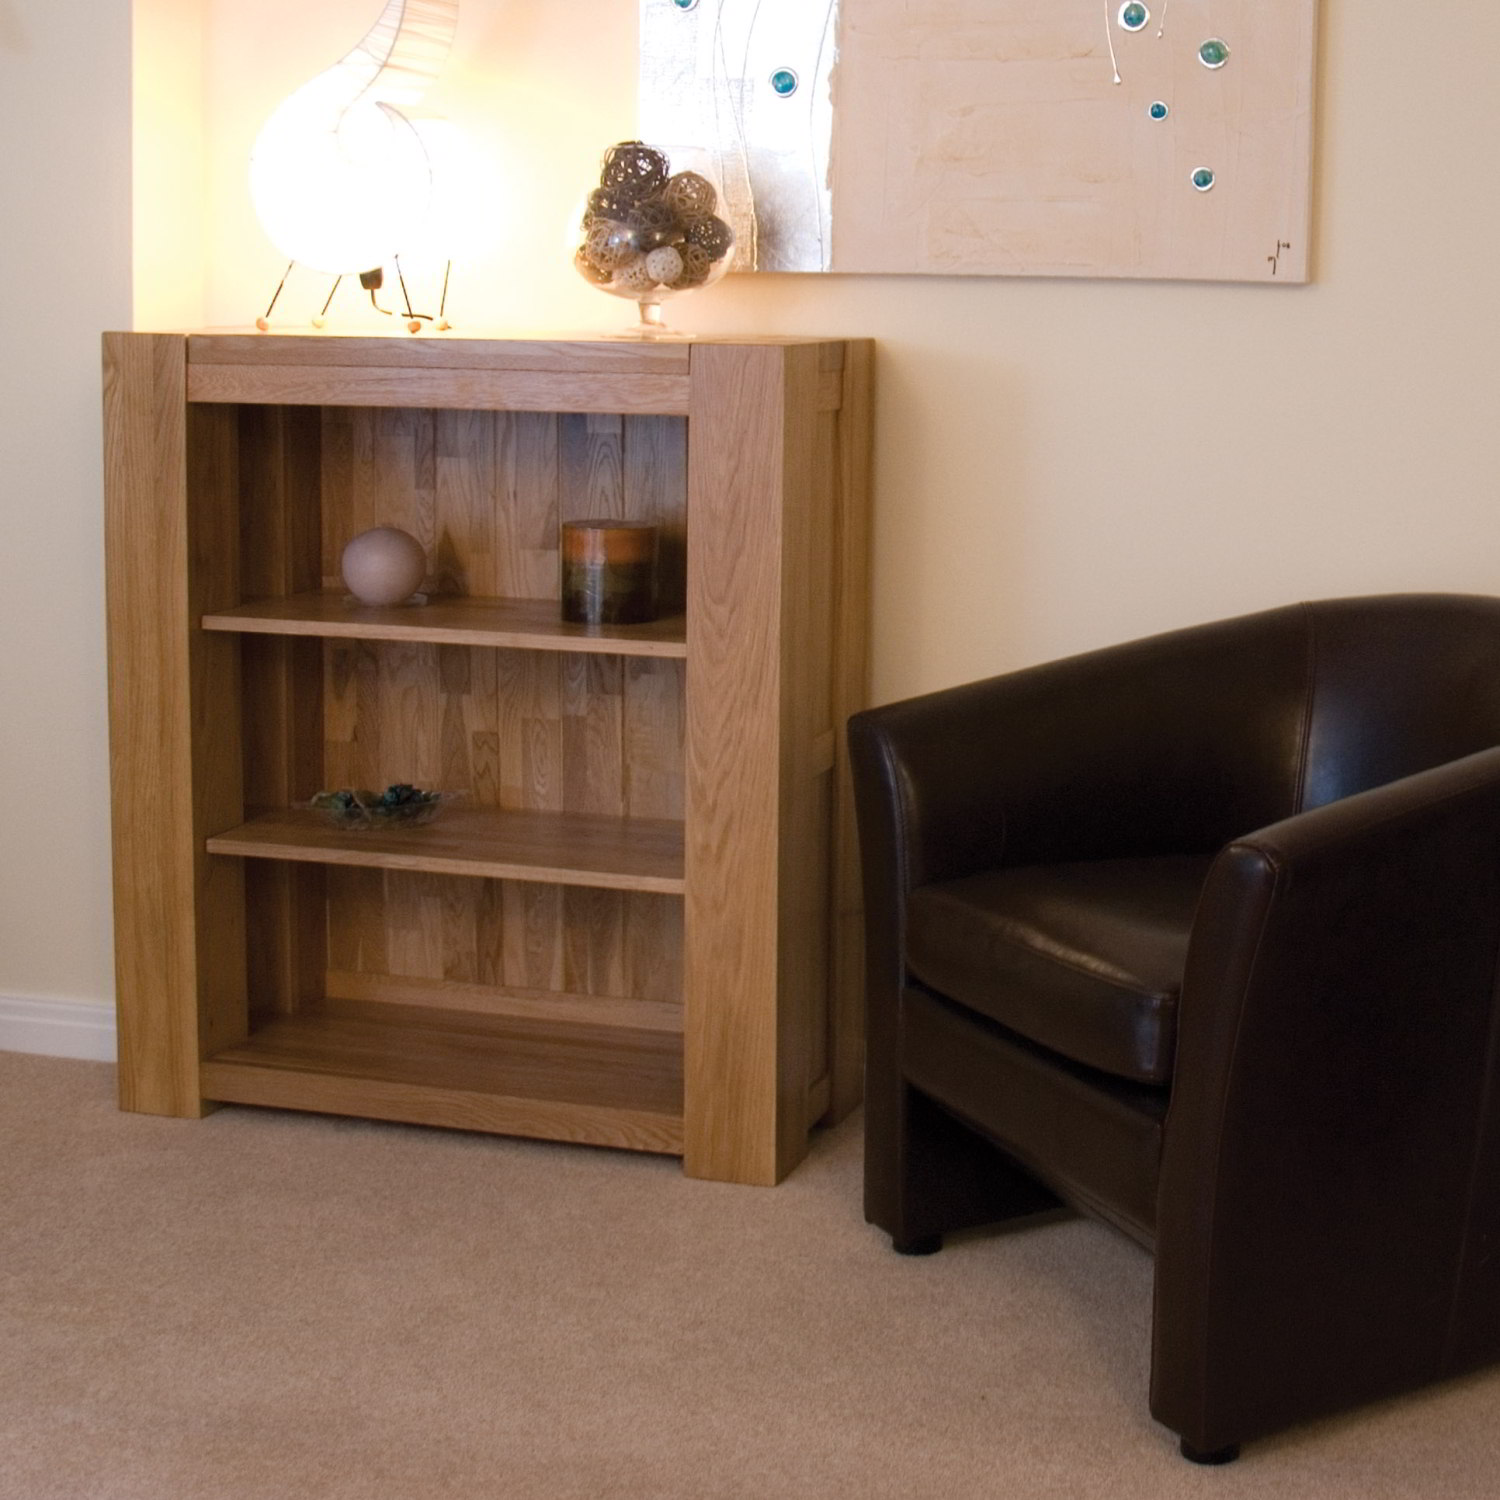 Pemberton Solid Oak Furniture Small Living Room Office Bookcase